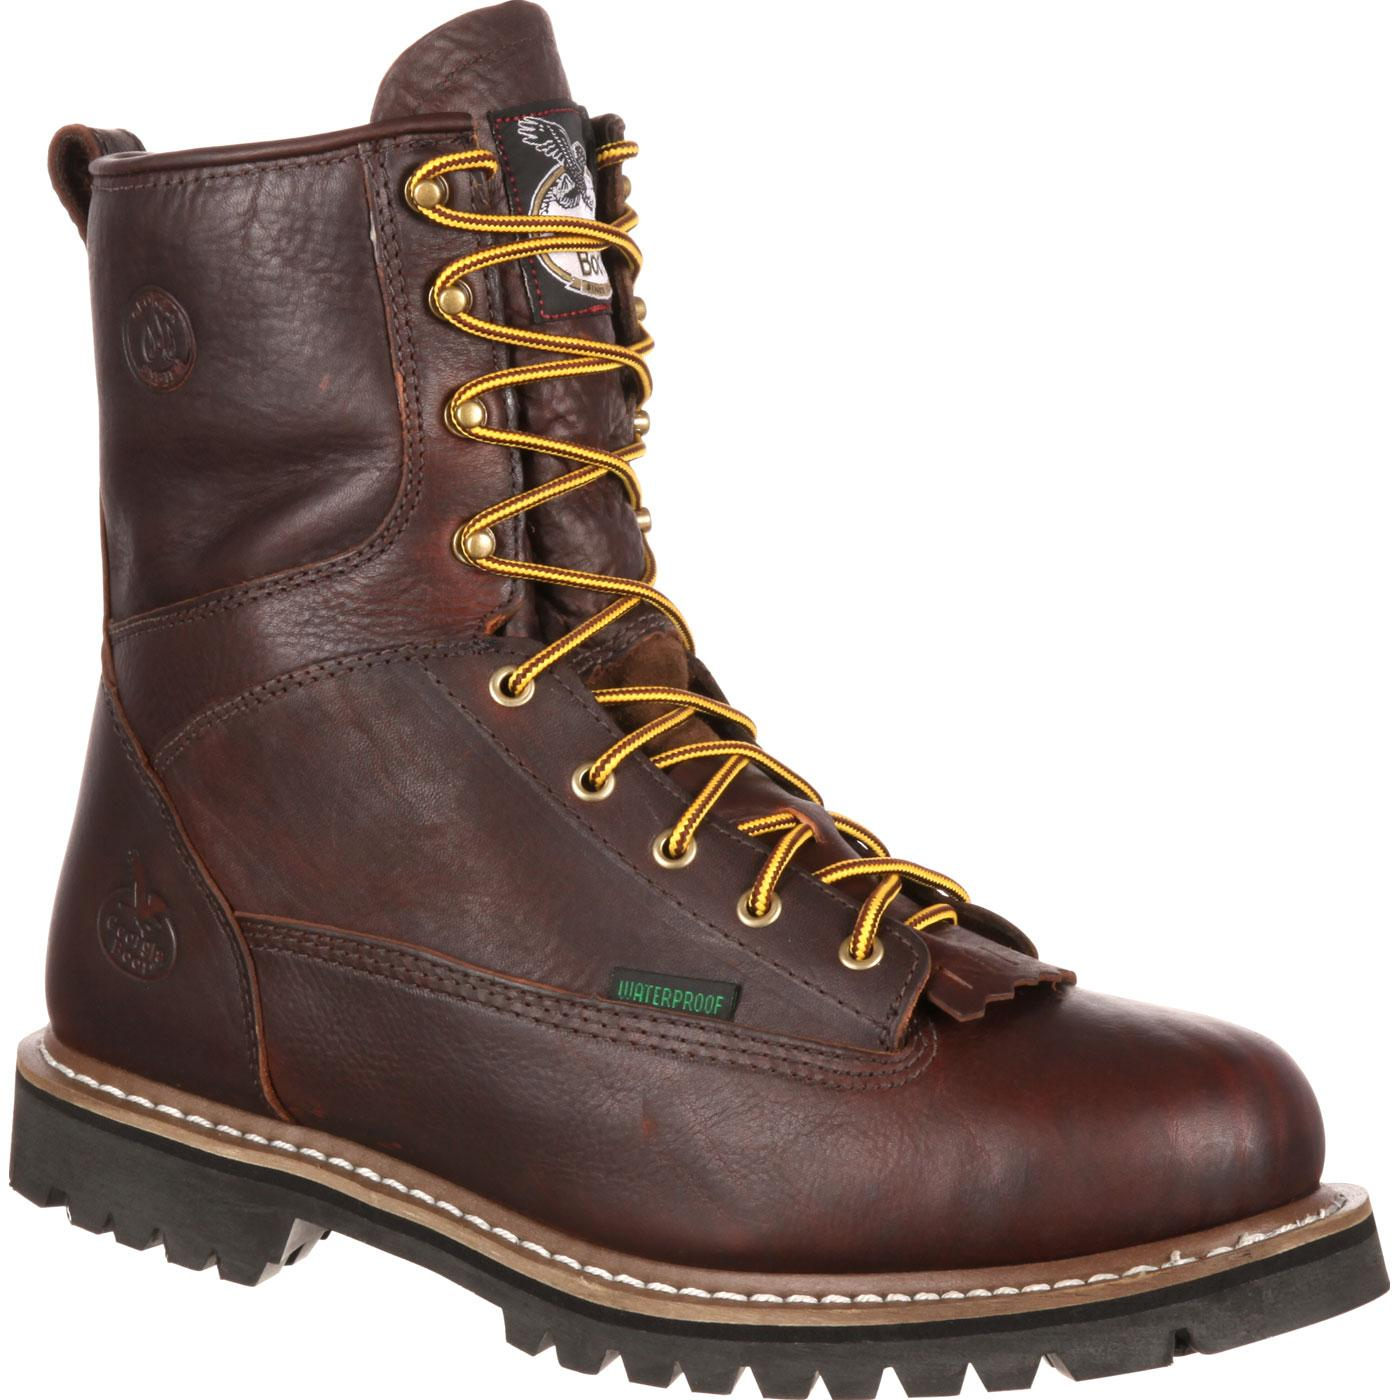 83ee3121d8a Georgia Boot Waterproof Lace-To-Toe Work Boot